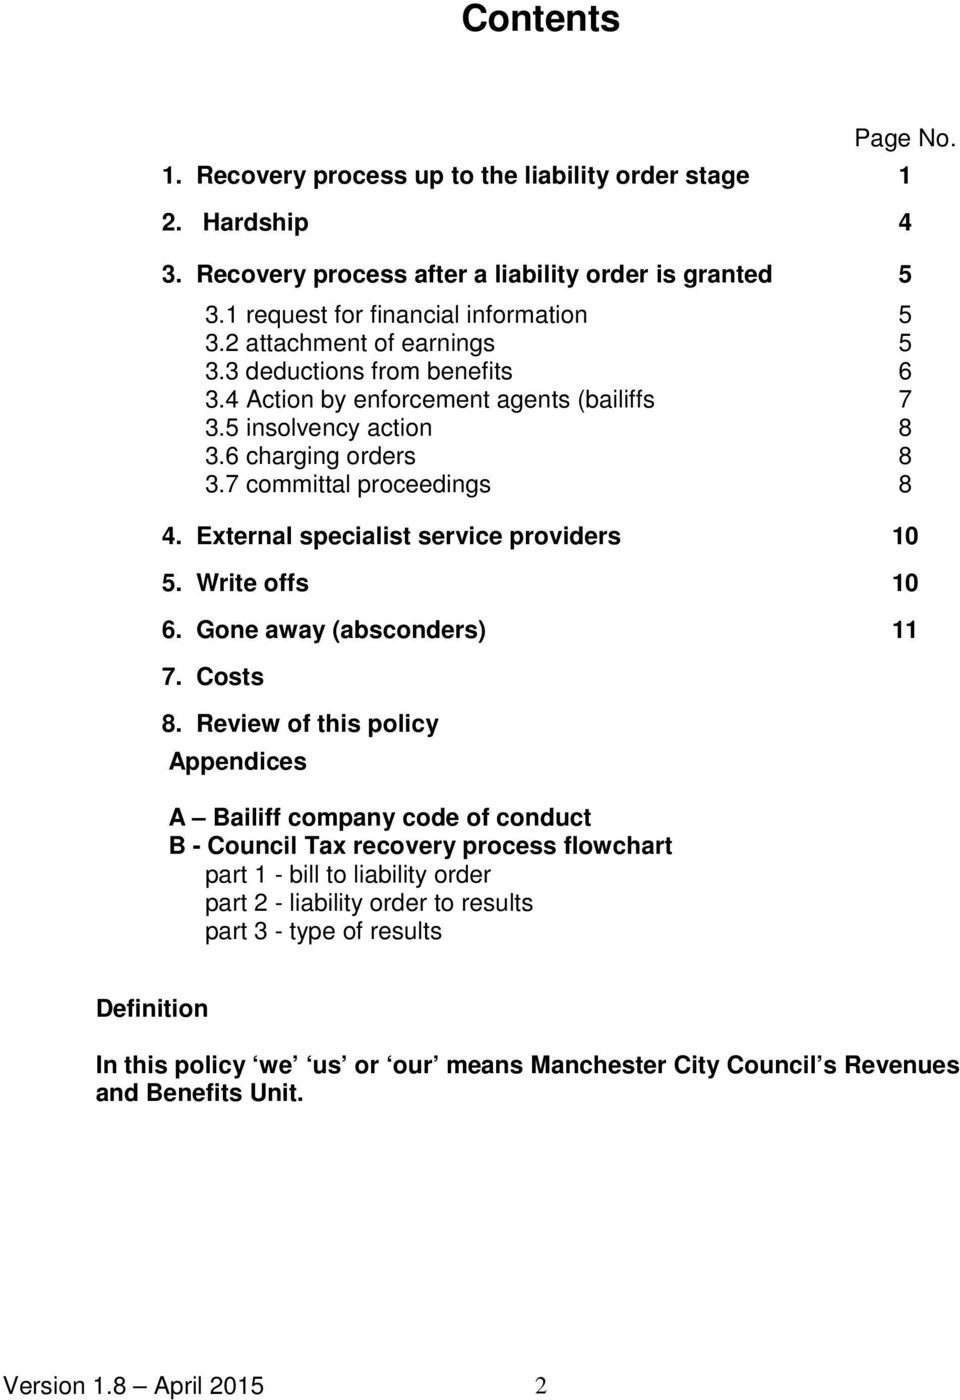 External specialist service providers 10 5. Write offs 10 6. Gone away (absconders) 11 7. Costs 8.